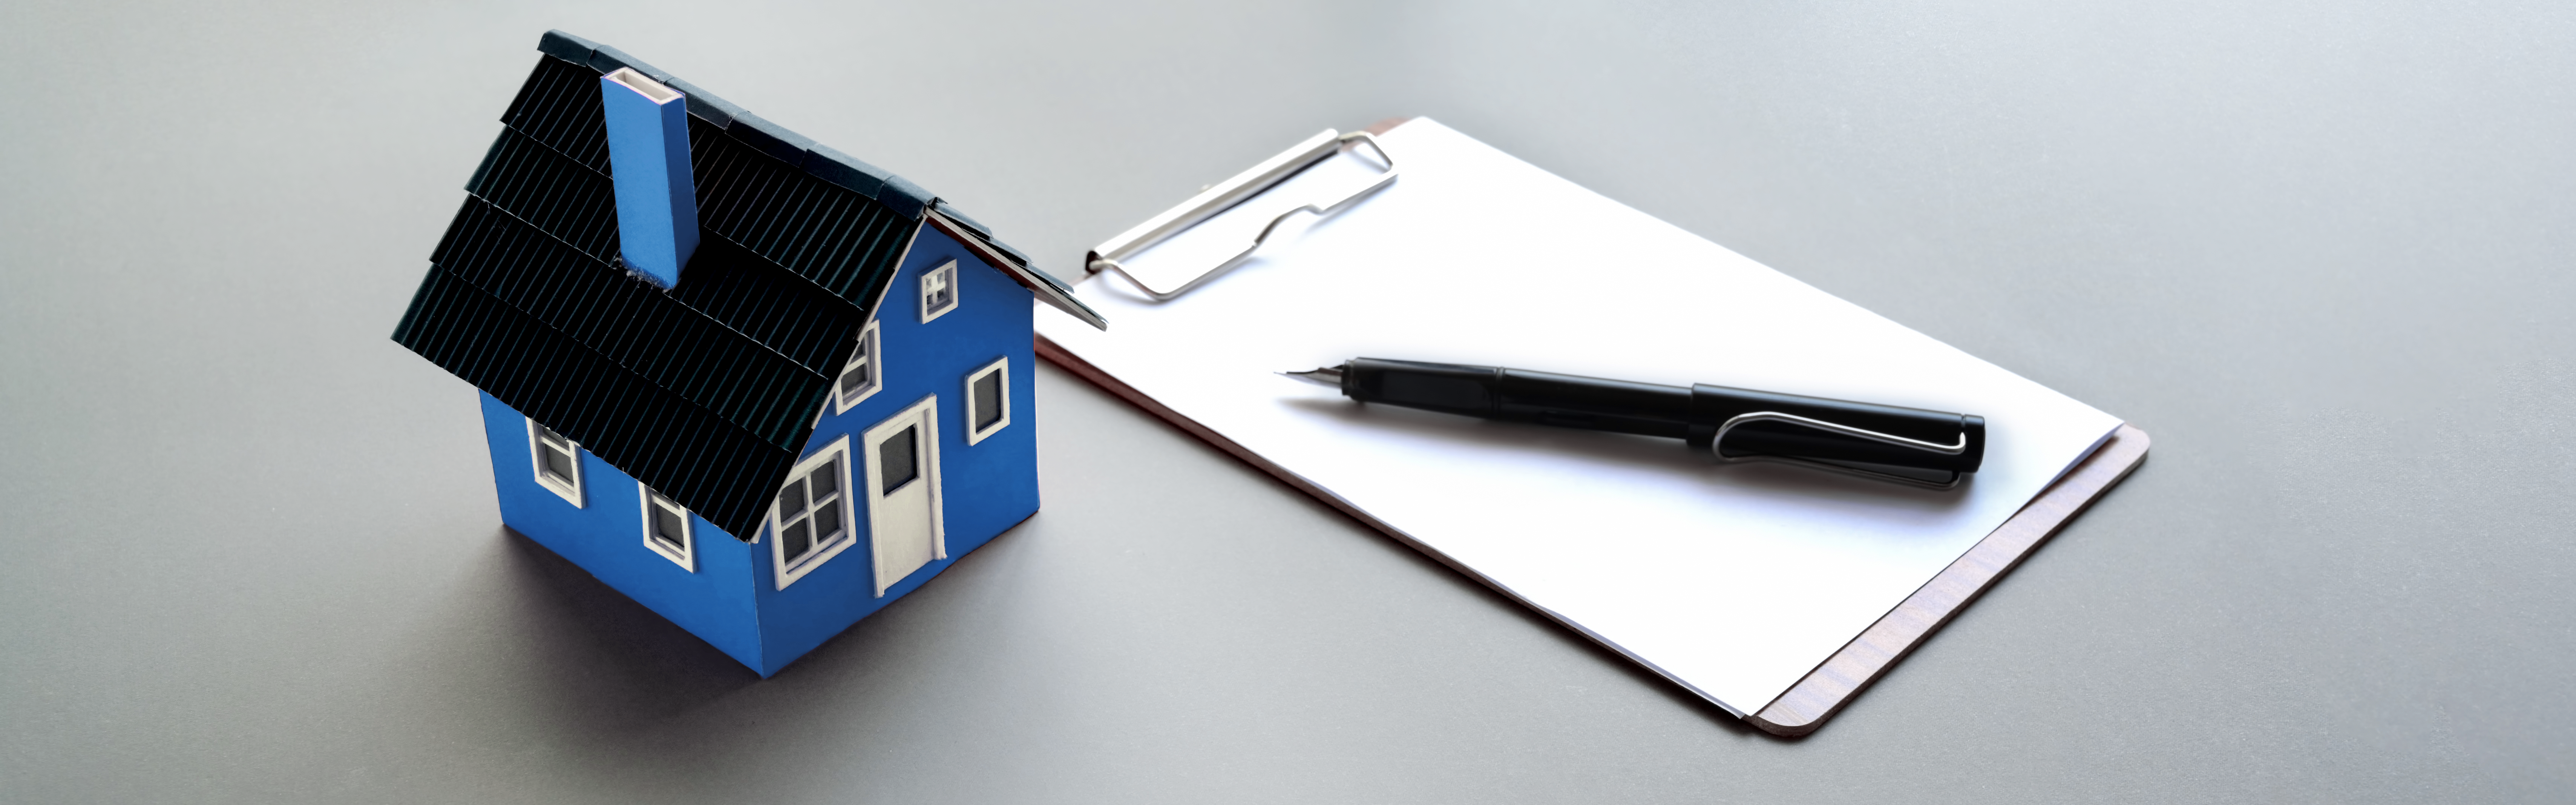 Cutting costs to improve home loan approval during COVID-19